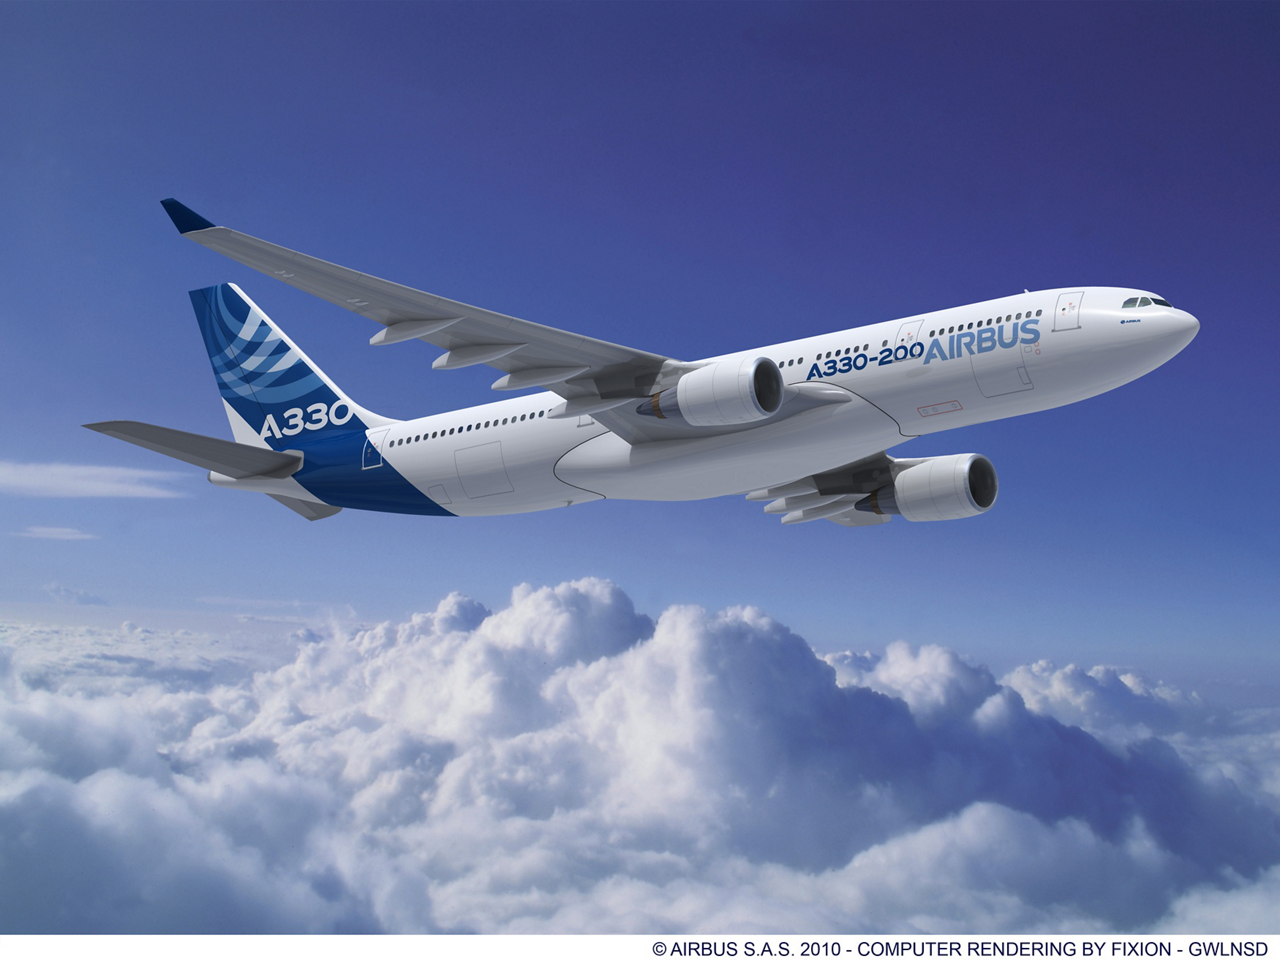 The Airbus A330-200, here with GE engines. The versatile mid-size widebody.